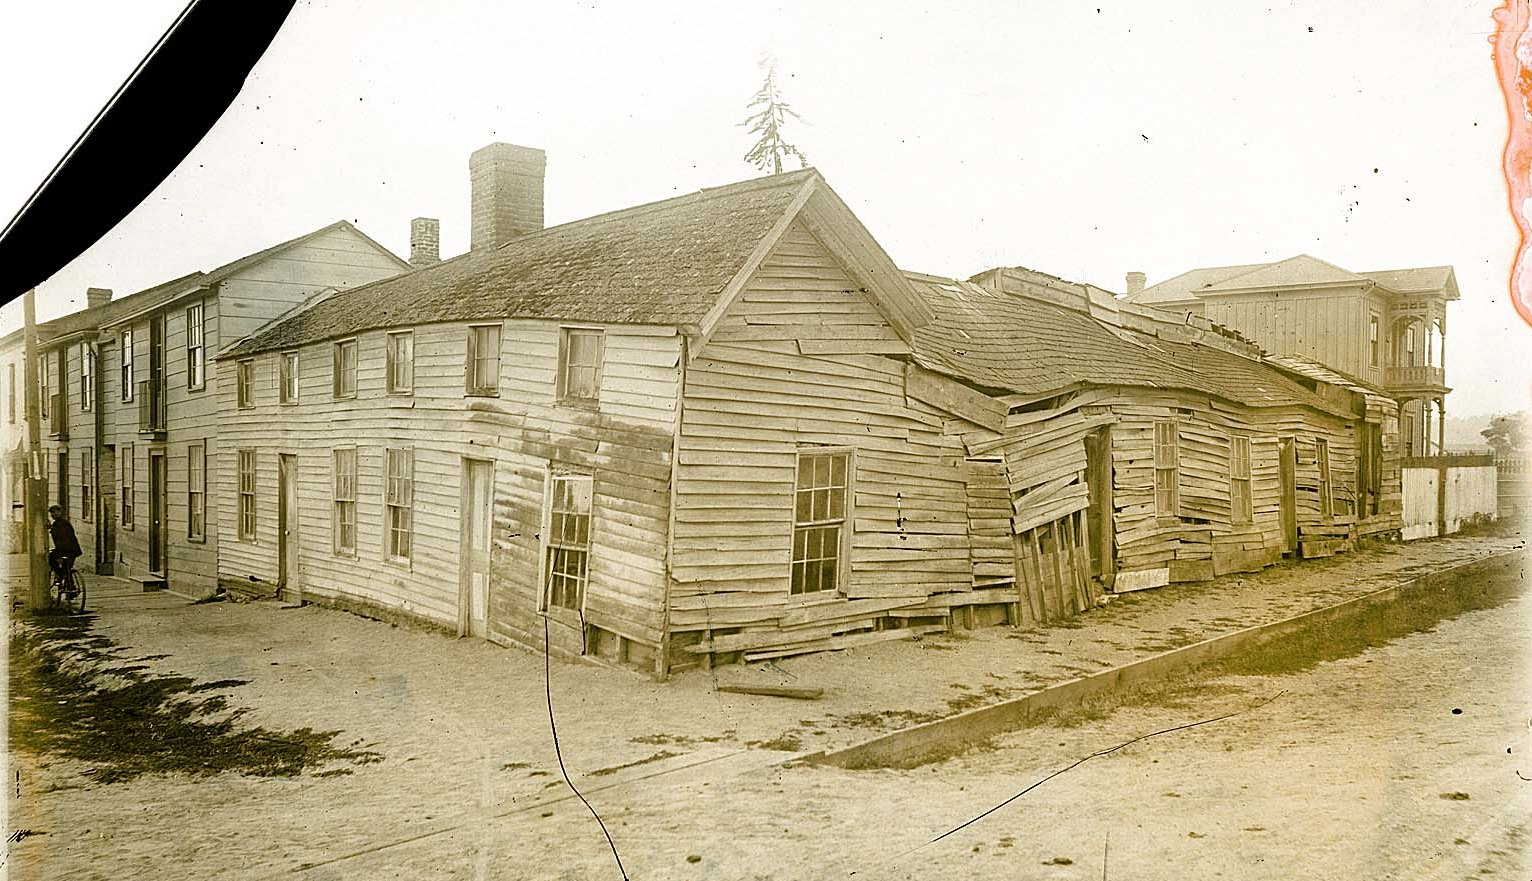 Building Falling Down : Old buildings lynette s norcal history